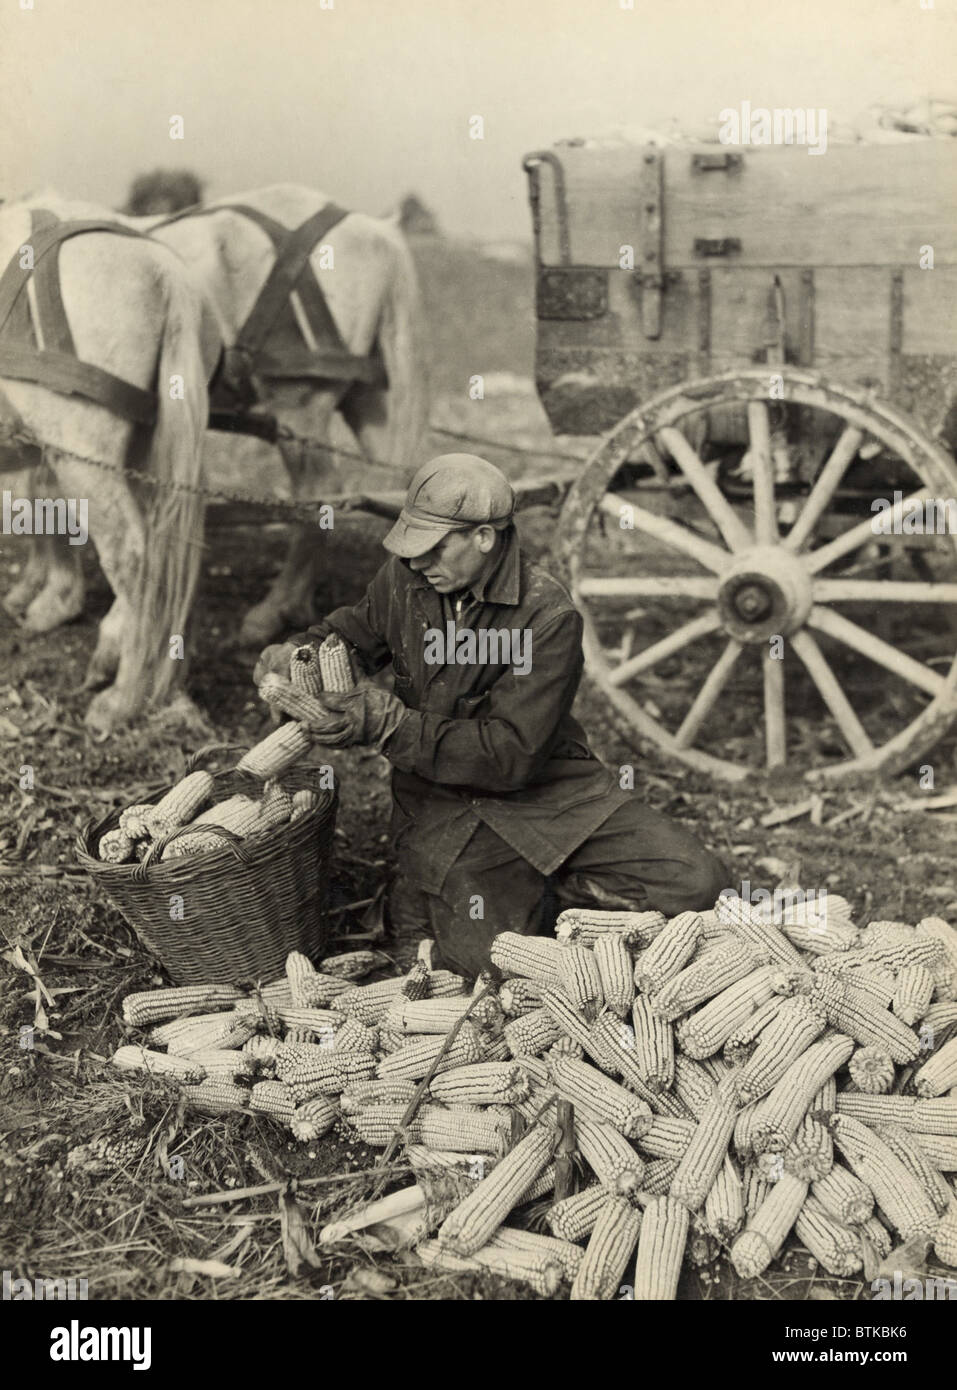 Farmer collecting husked corn to load into a horse drawn wagon in Washington County, Maryland. Roosevelt's farm - Stock Image